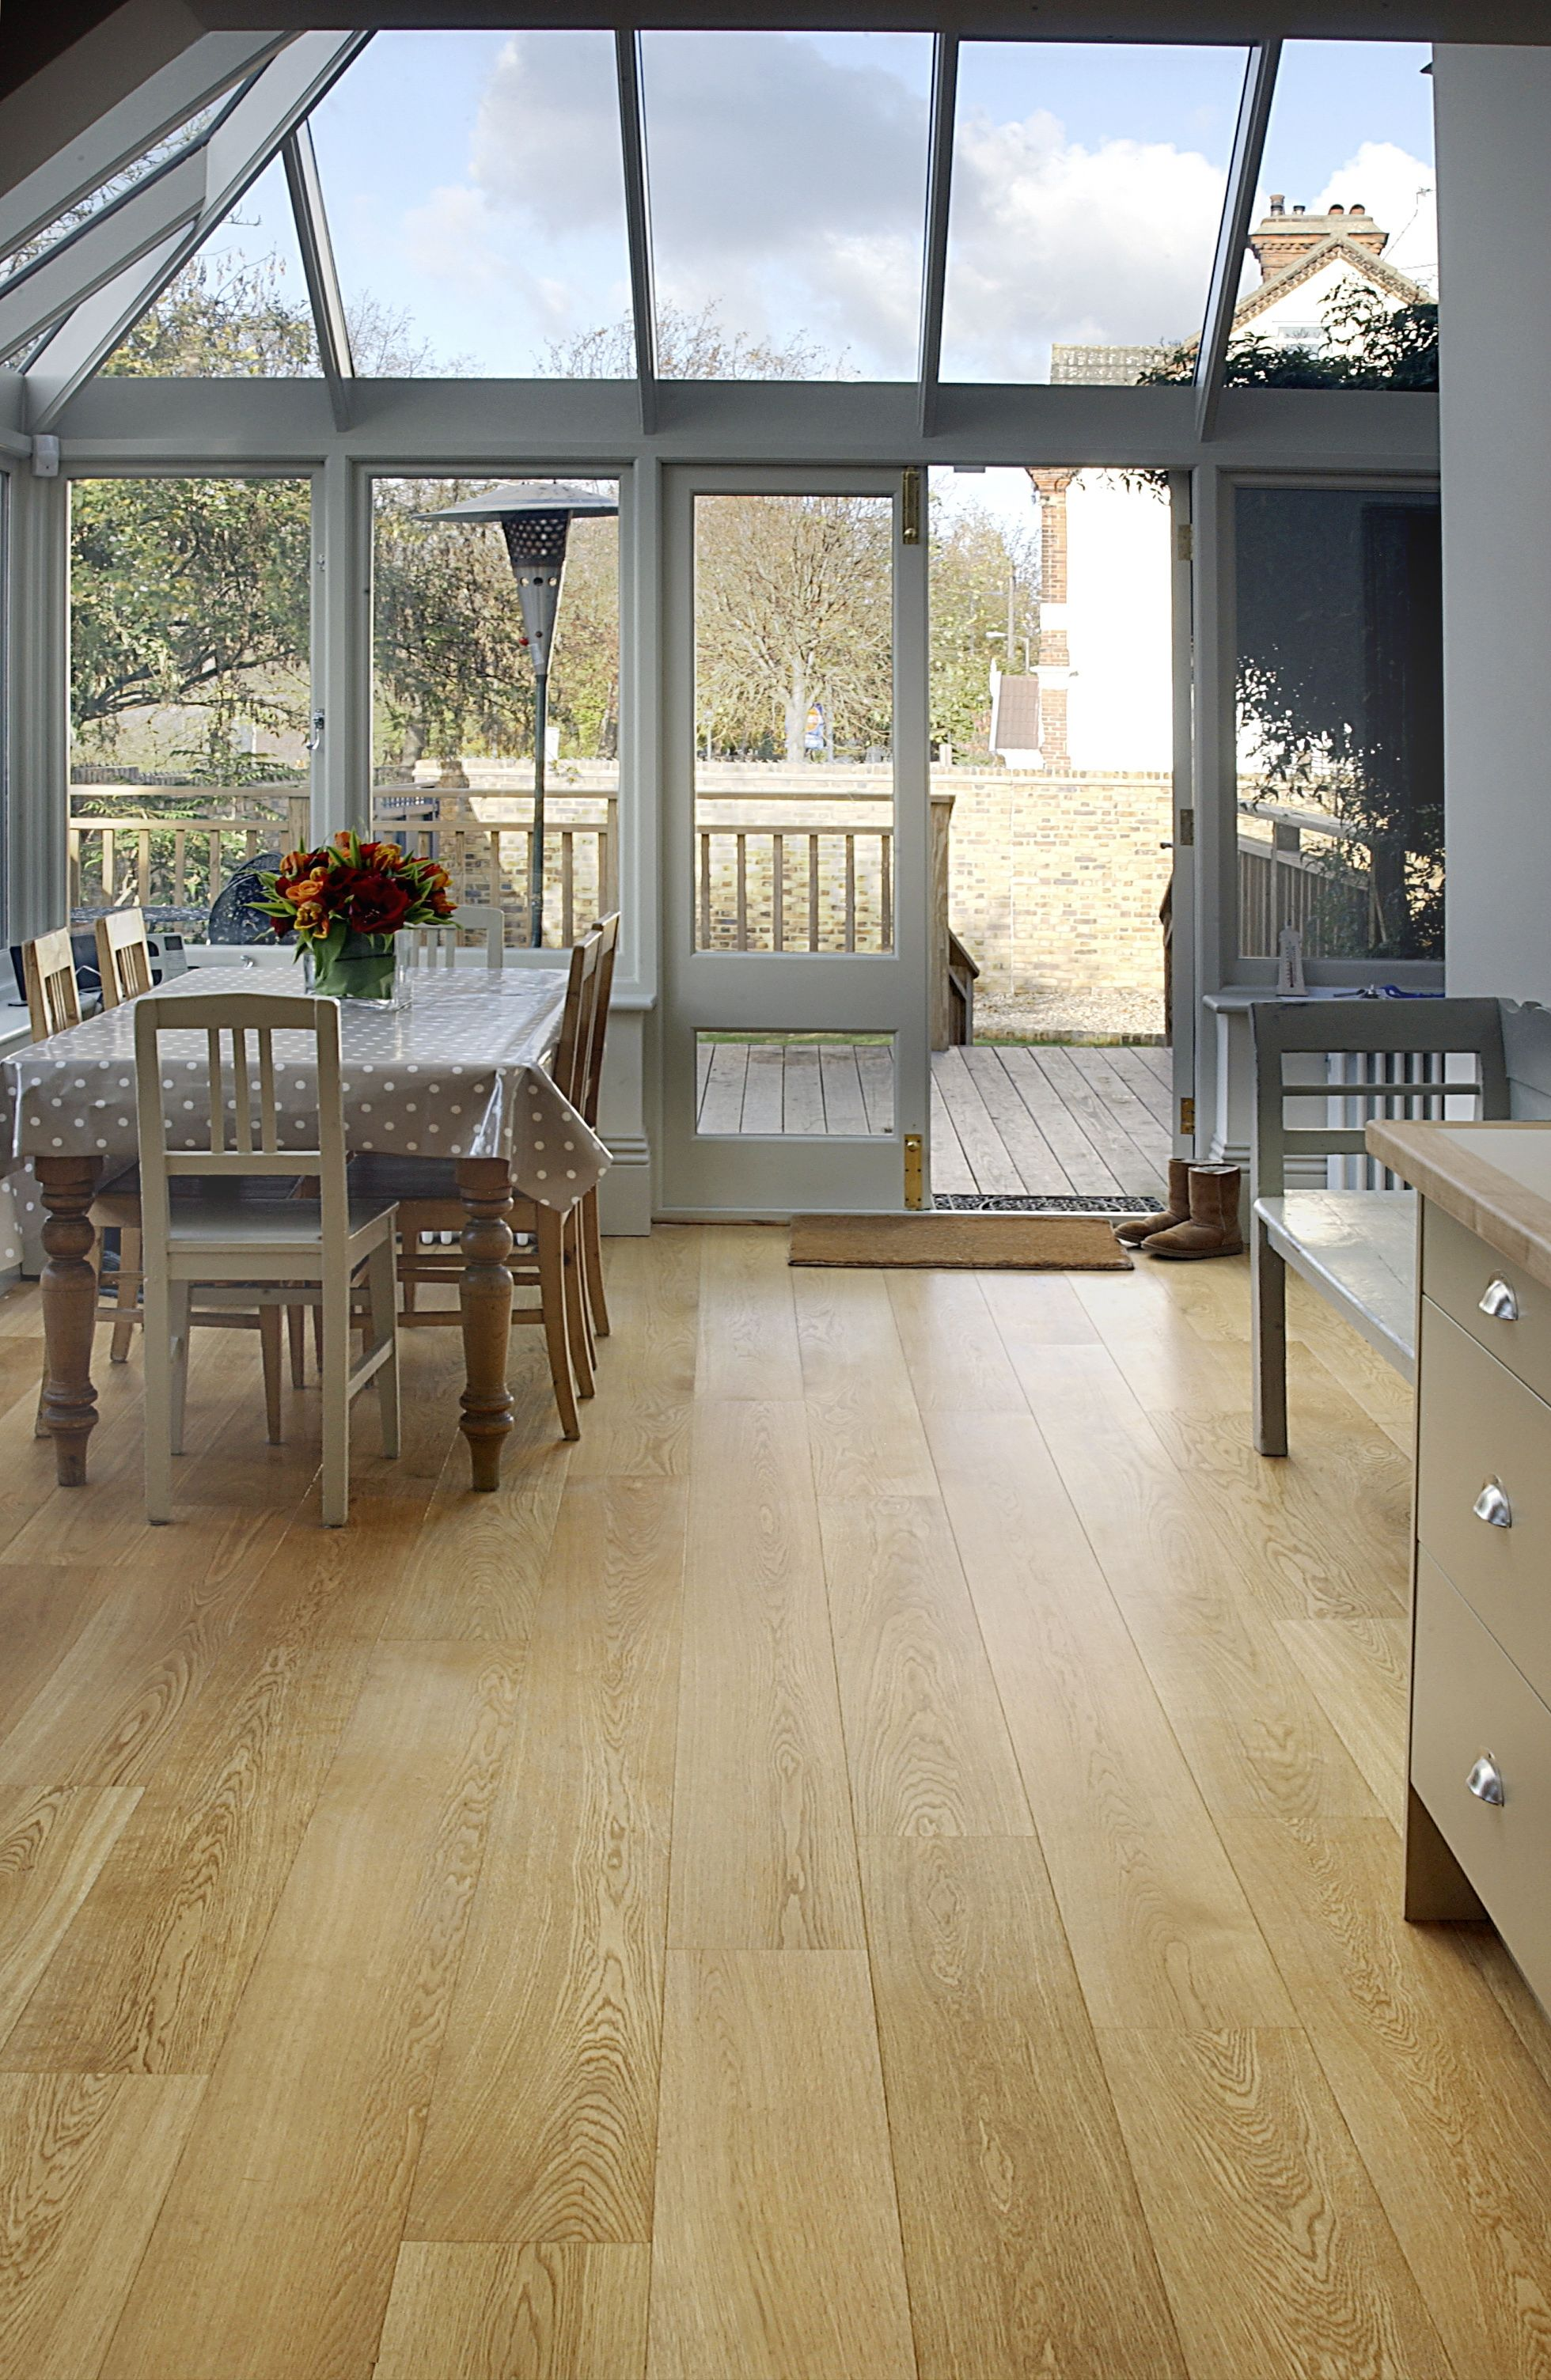 Our oak wood flooring looks the part in this lovely glass